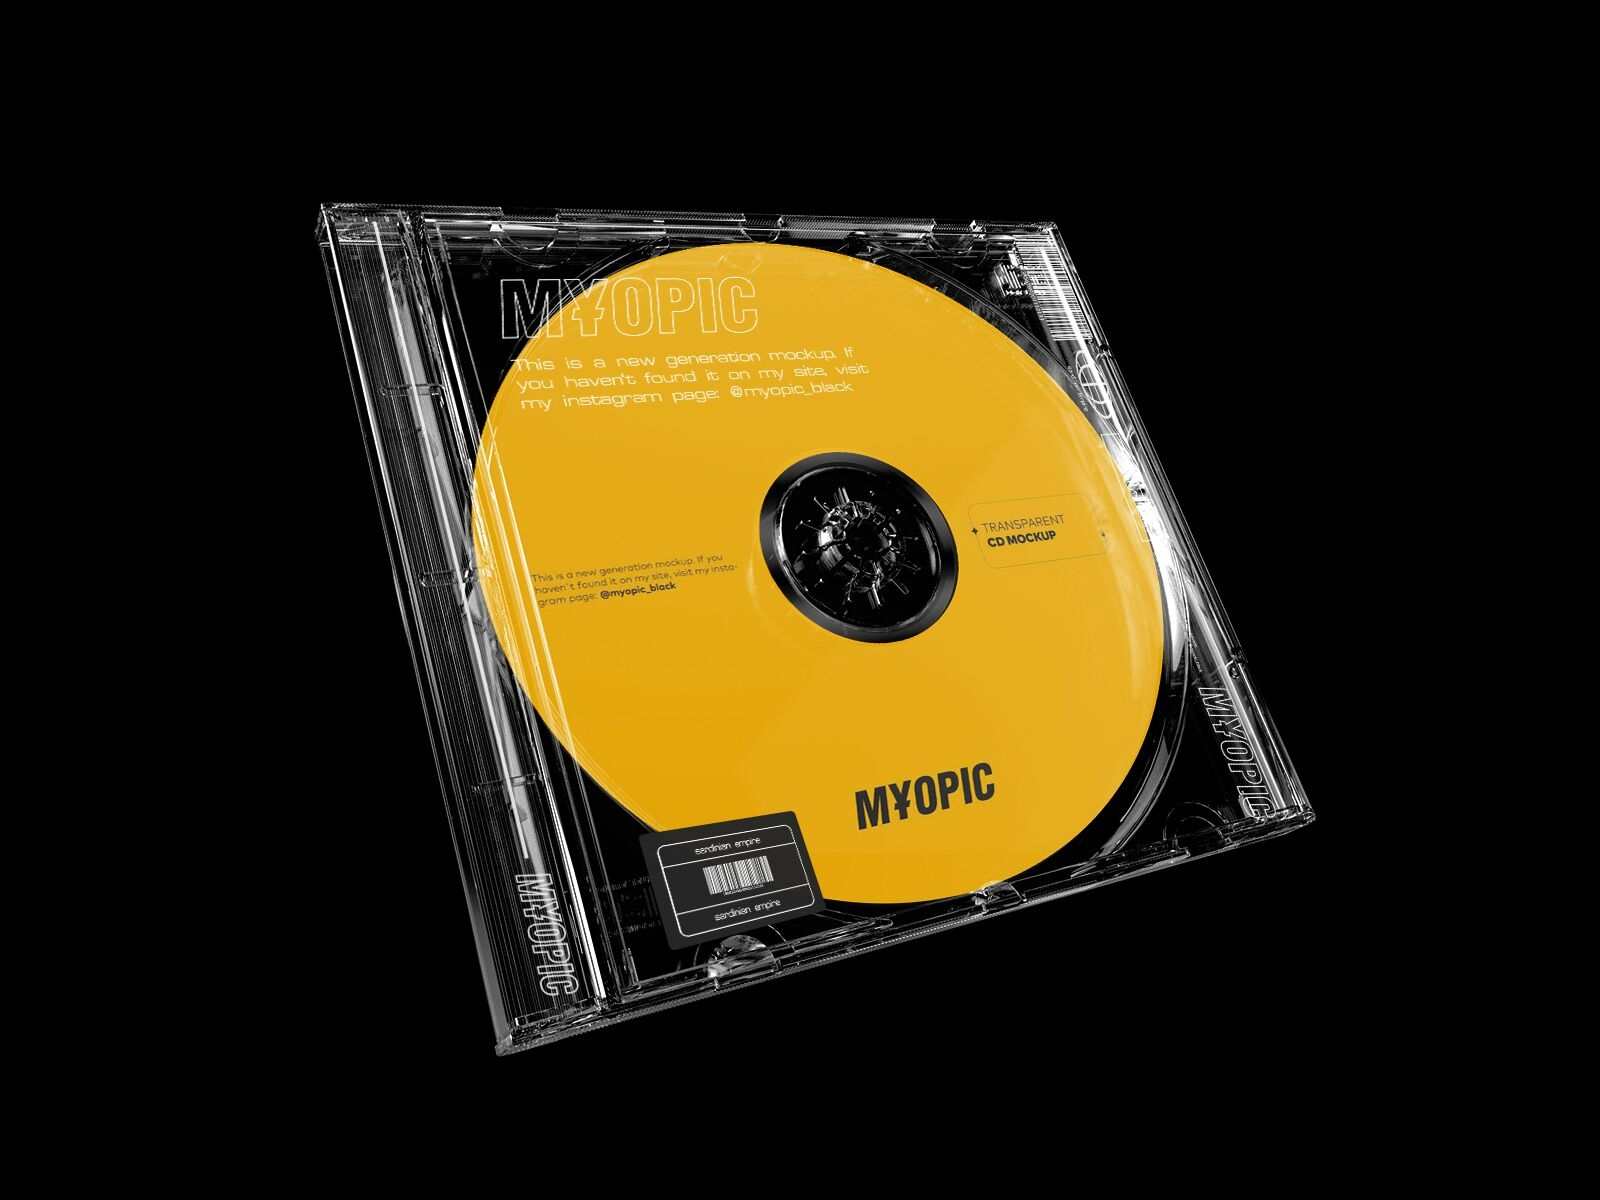 free cd jewel case mockup. Dvd Mockup Designs Themes Templates And Downloadable Graphic Elements On Dribbble